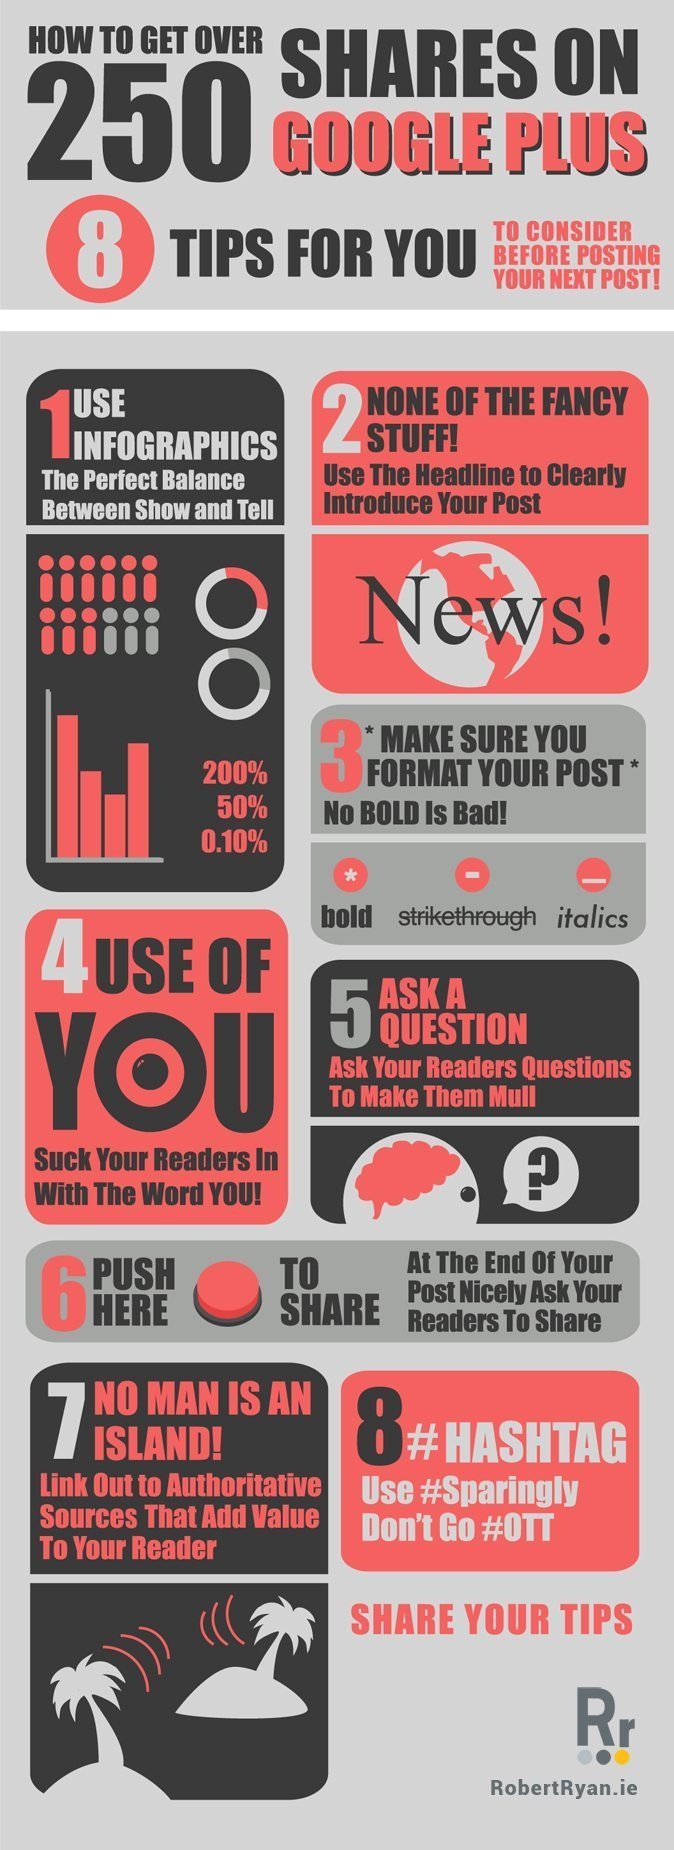 How to Get 250 Shares on Google Plus - Infographic